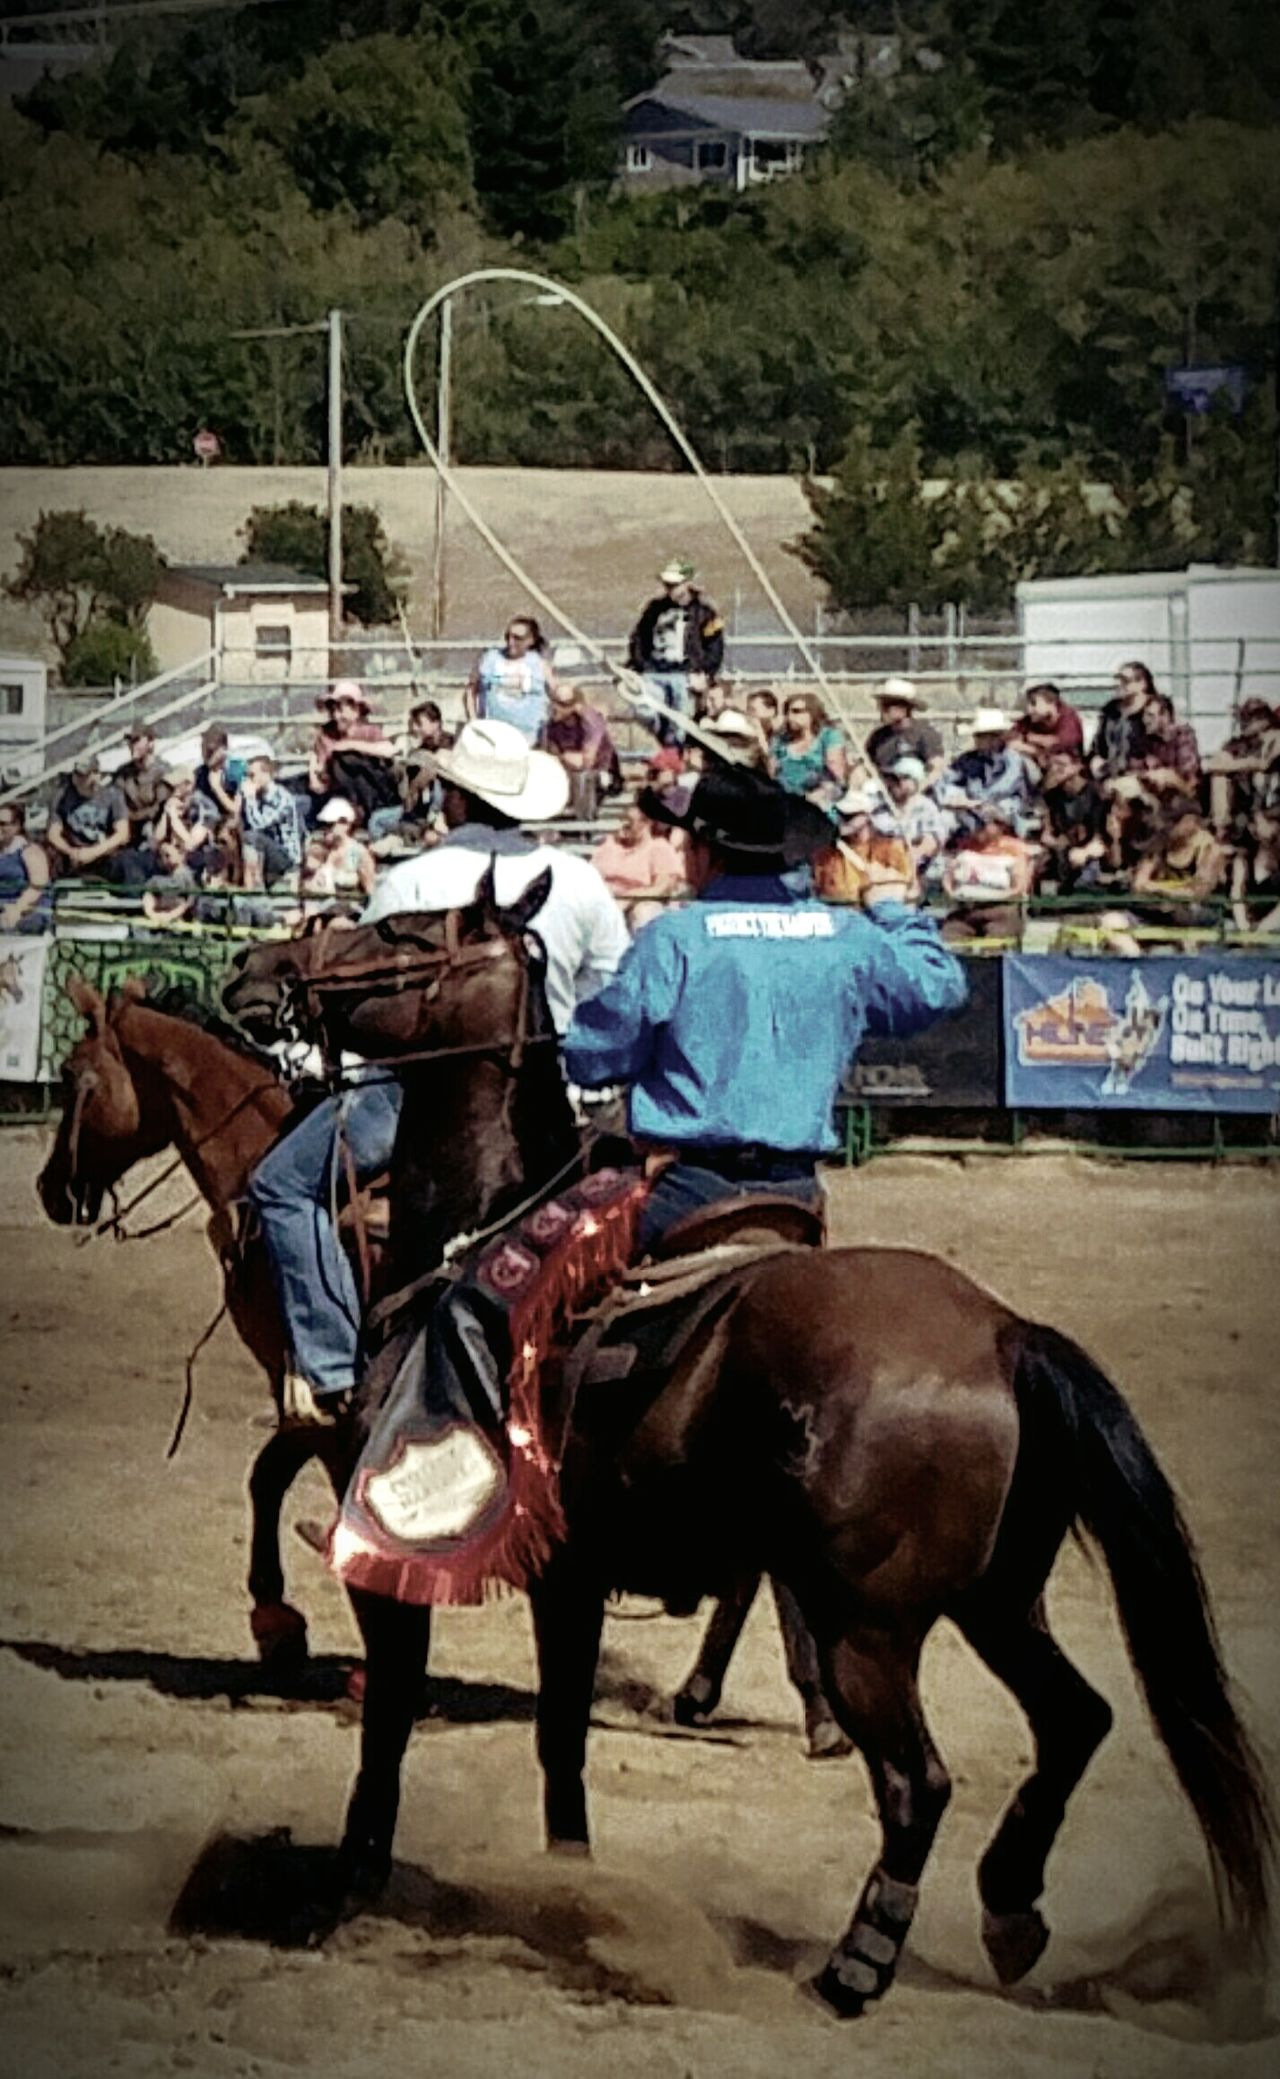 Ready to rope the bull... AndroidPhotography Newport Oregon Lincoln County Fair Rodeo ❤ ToolWiz Photos Photo Editor My Photo Album ♡ My Artwork 🌹